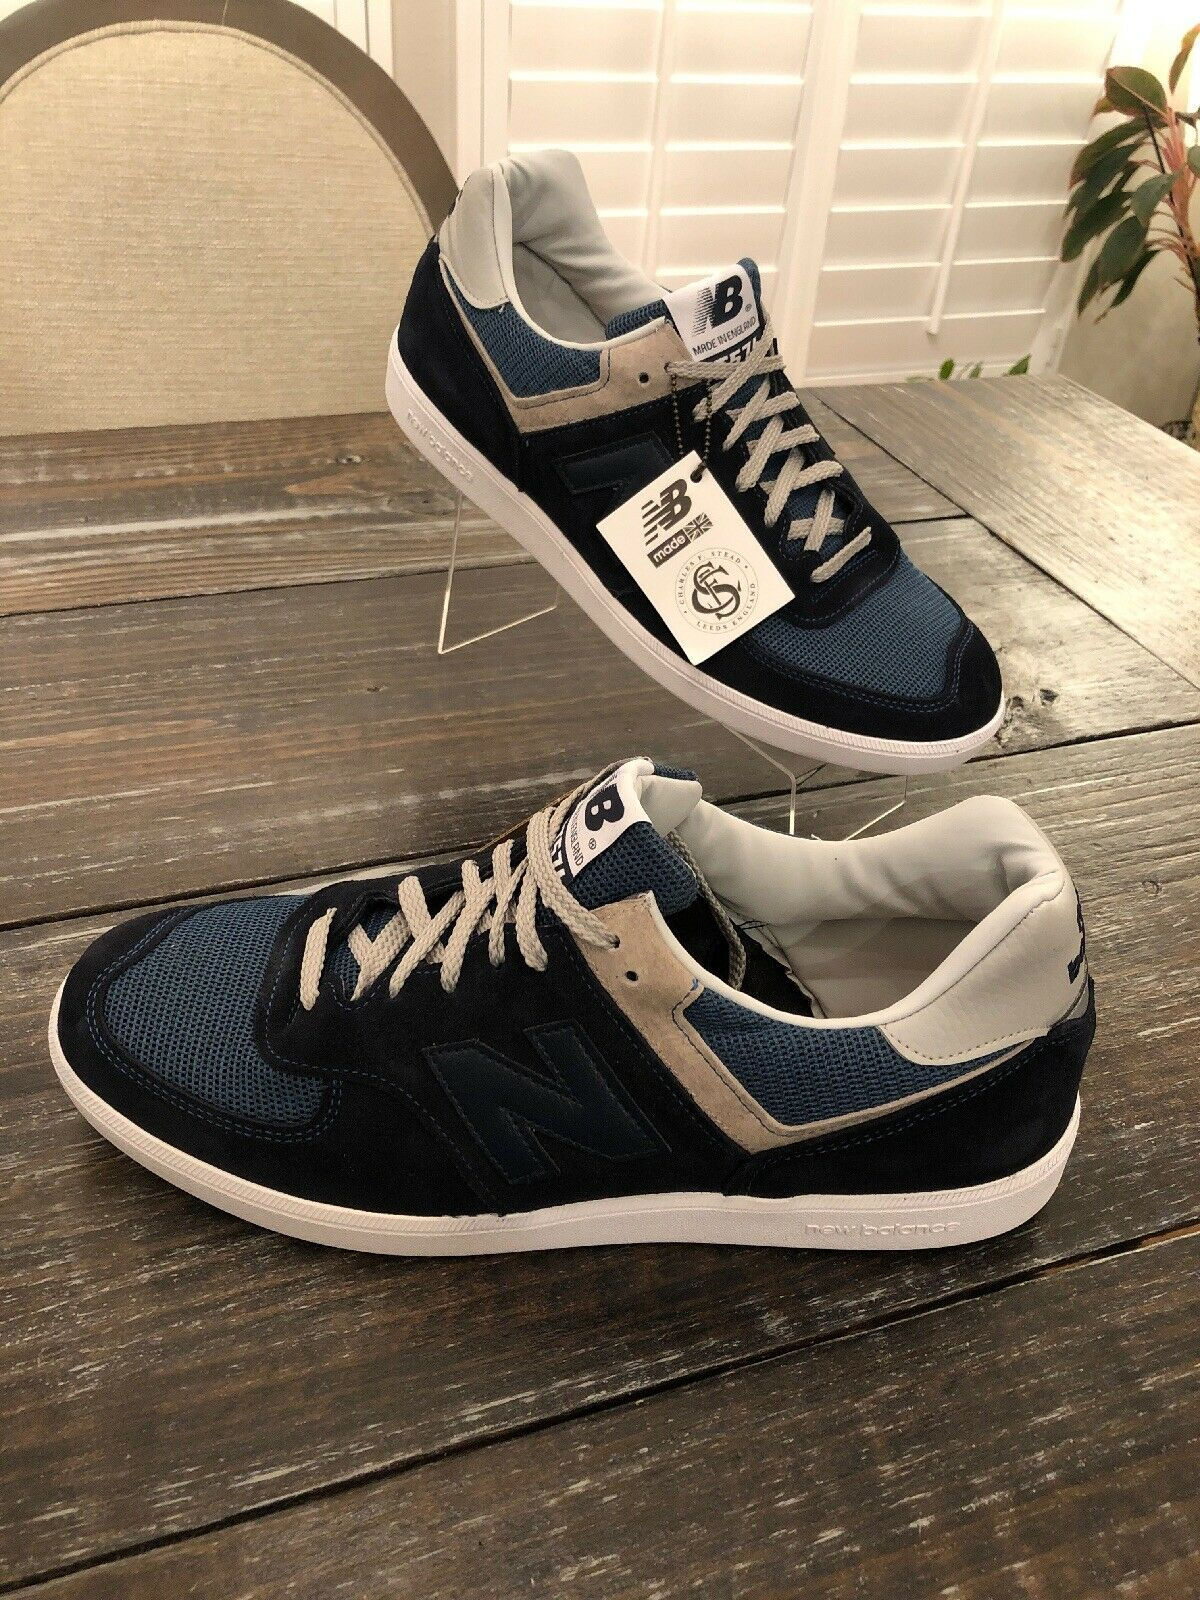 New Balance CT576 Sneaker Head Grail Suede Mens Size 12 RARE Made in England